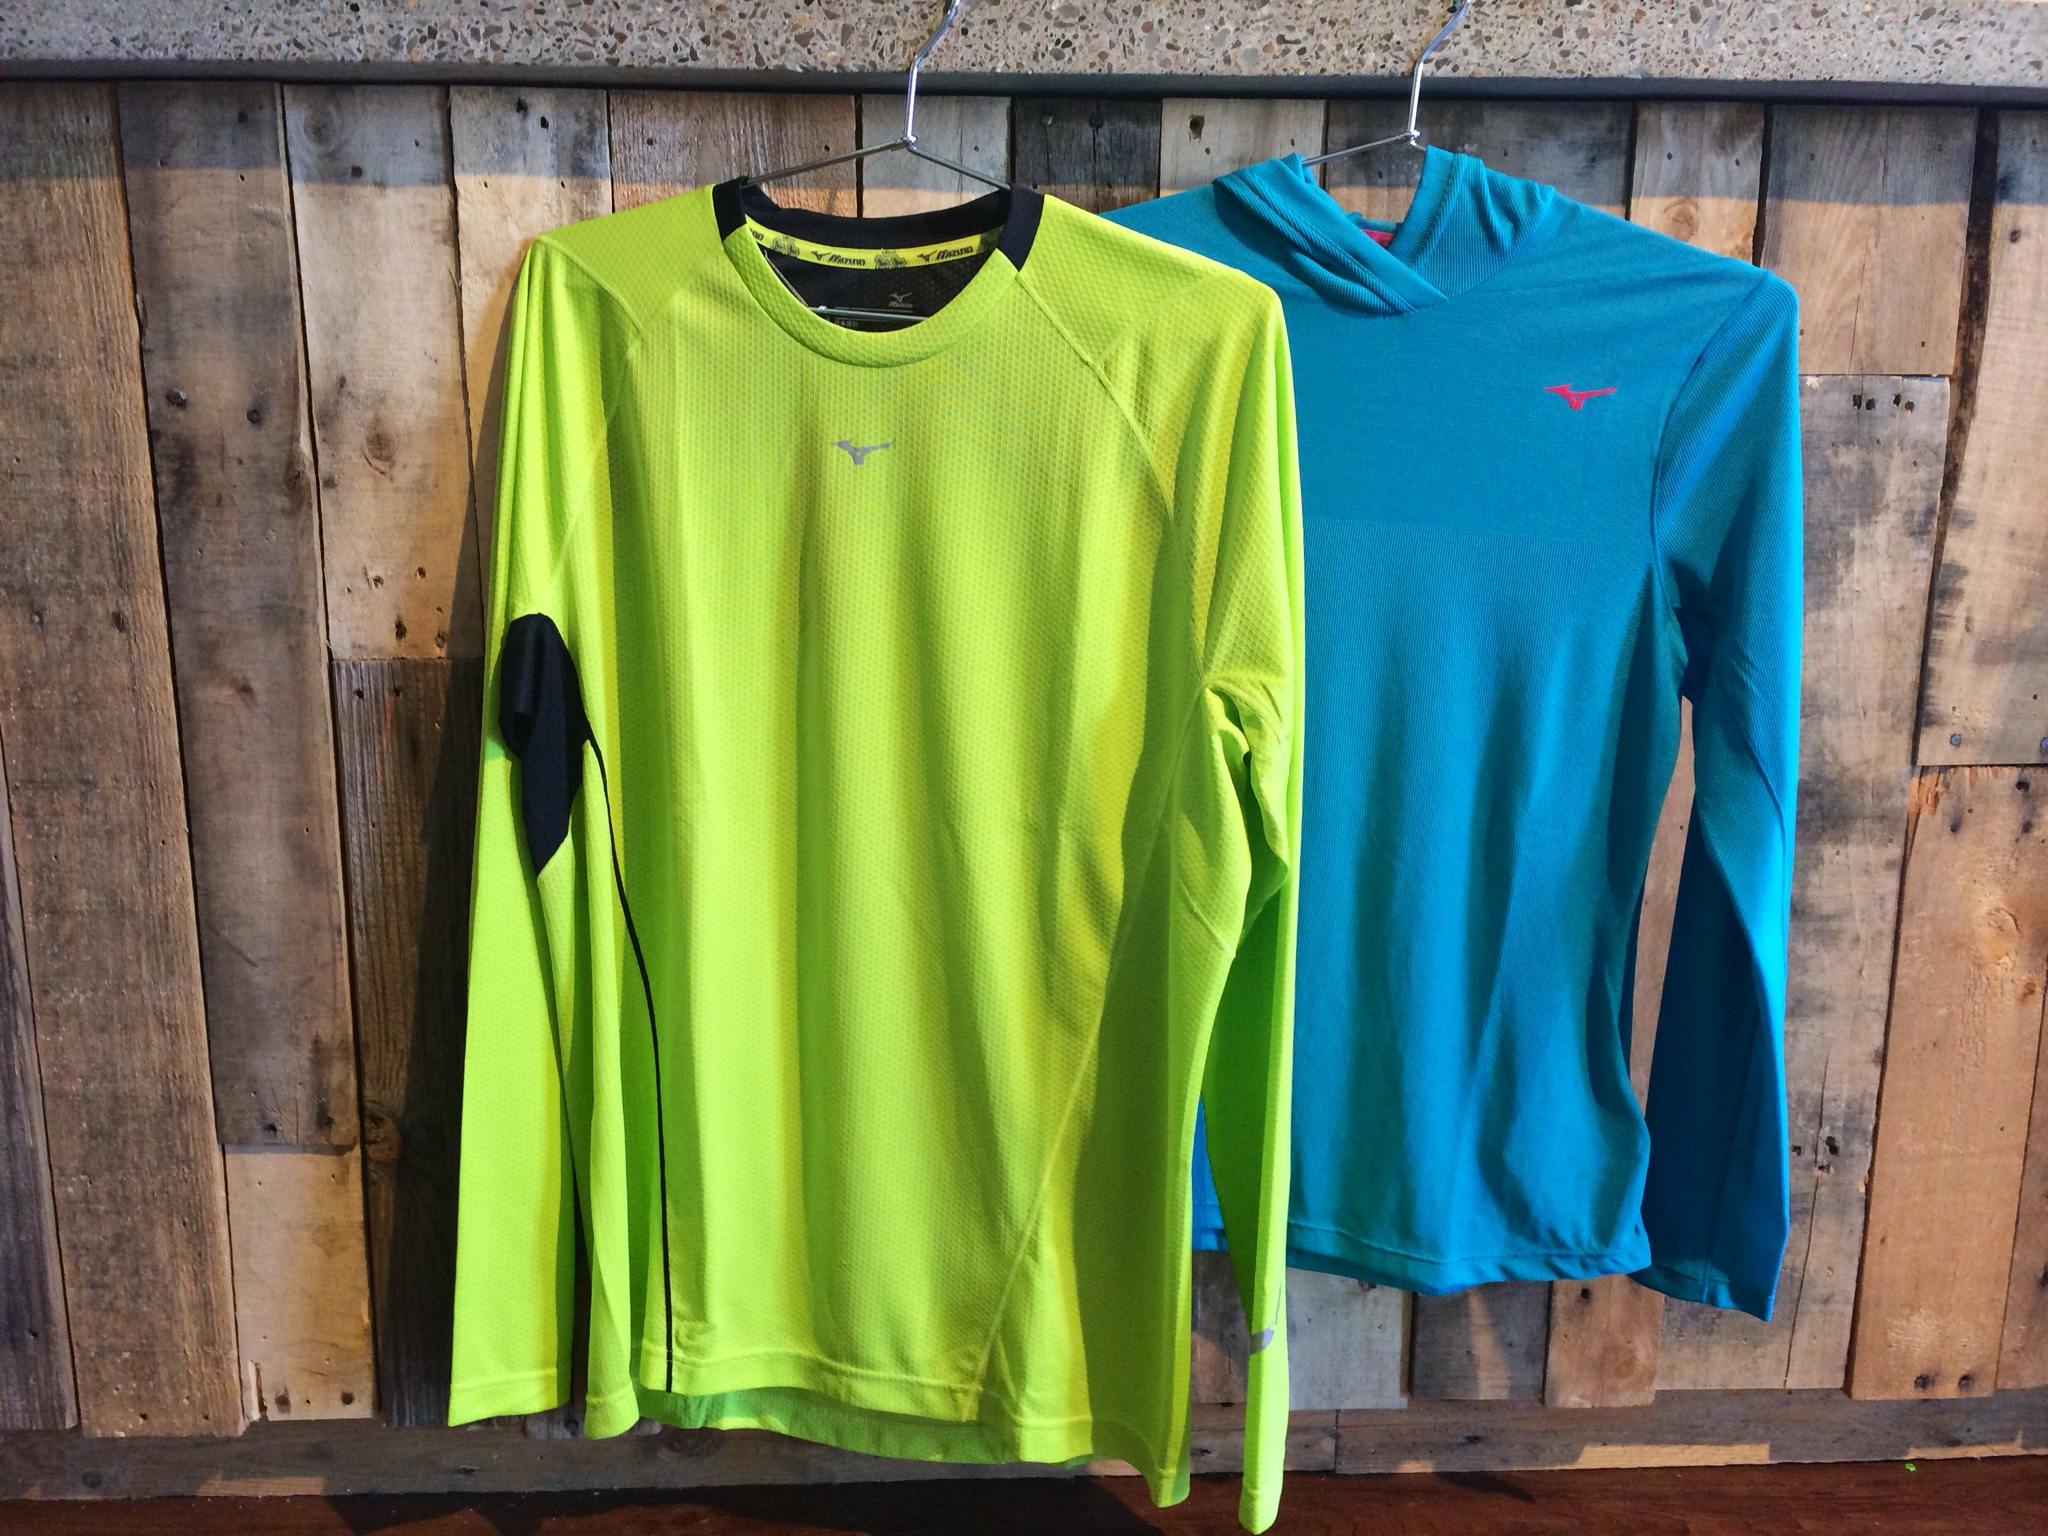 Mizuno's line of Breath Thermo products contains a synthetic material that not only wicks moisture, but uses that moisture to heat the clothing upon contact. These articles can be worn by themselves as a light-weight option for staying warm or as a base layer when temperaturesdrop below freezing.